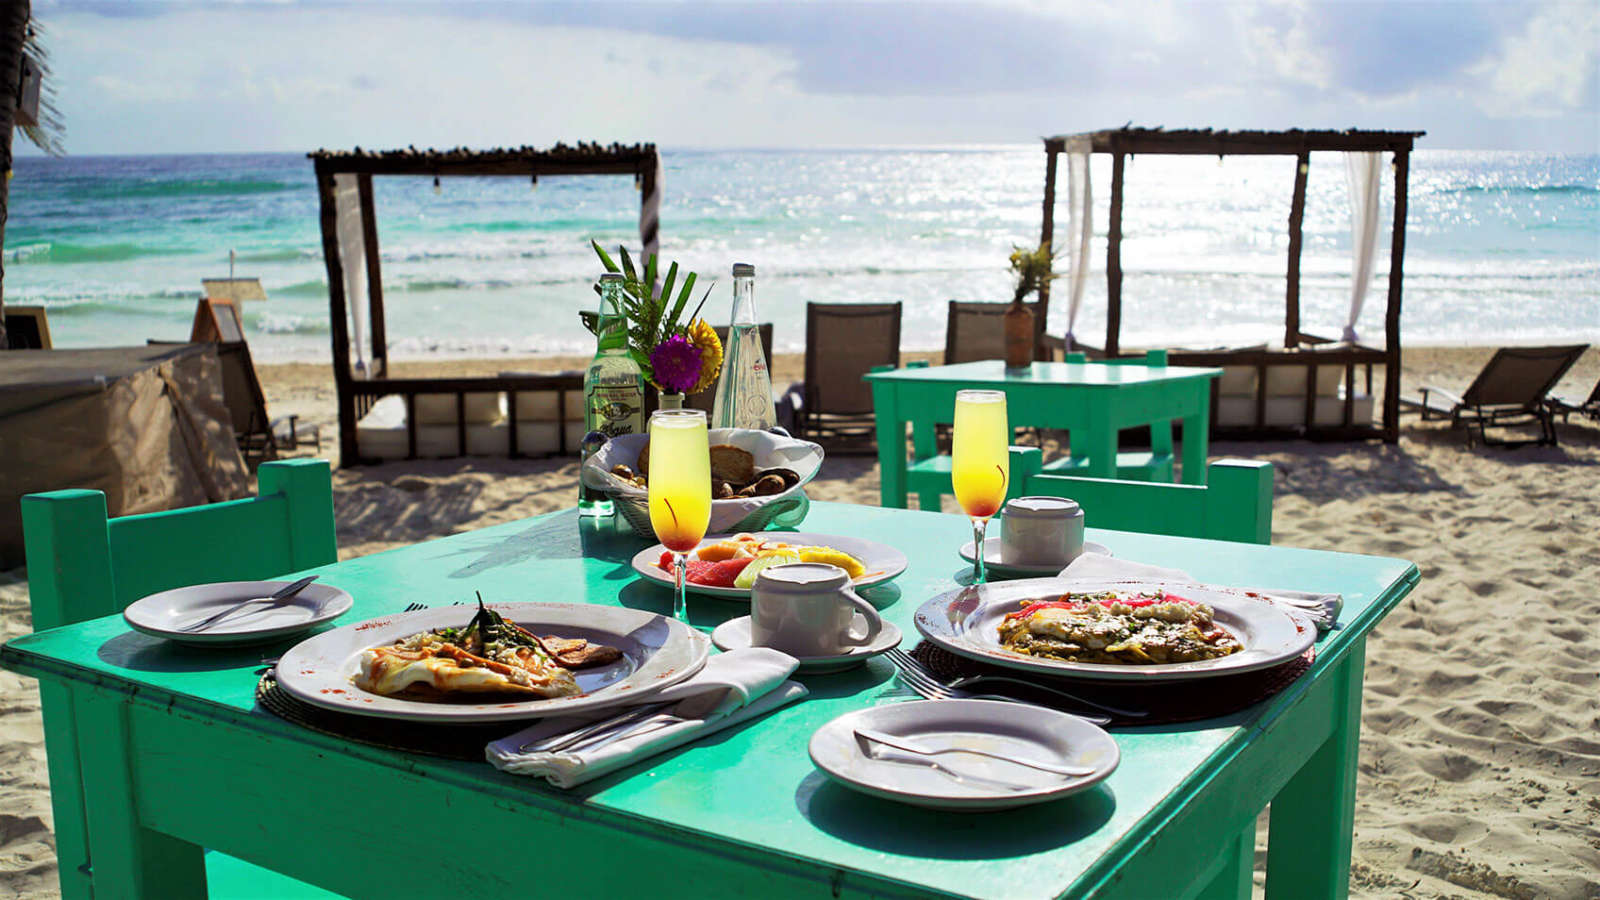 Beach meal at Hip Hotel Tulum